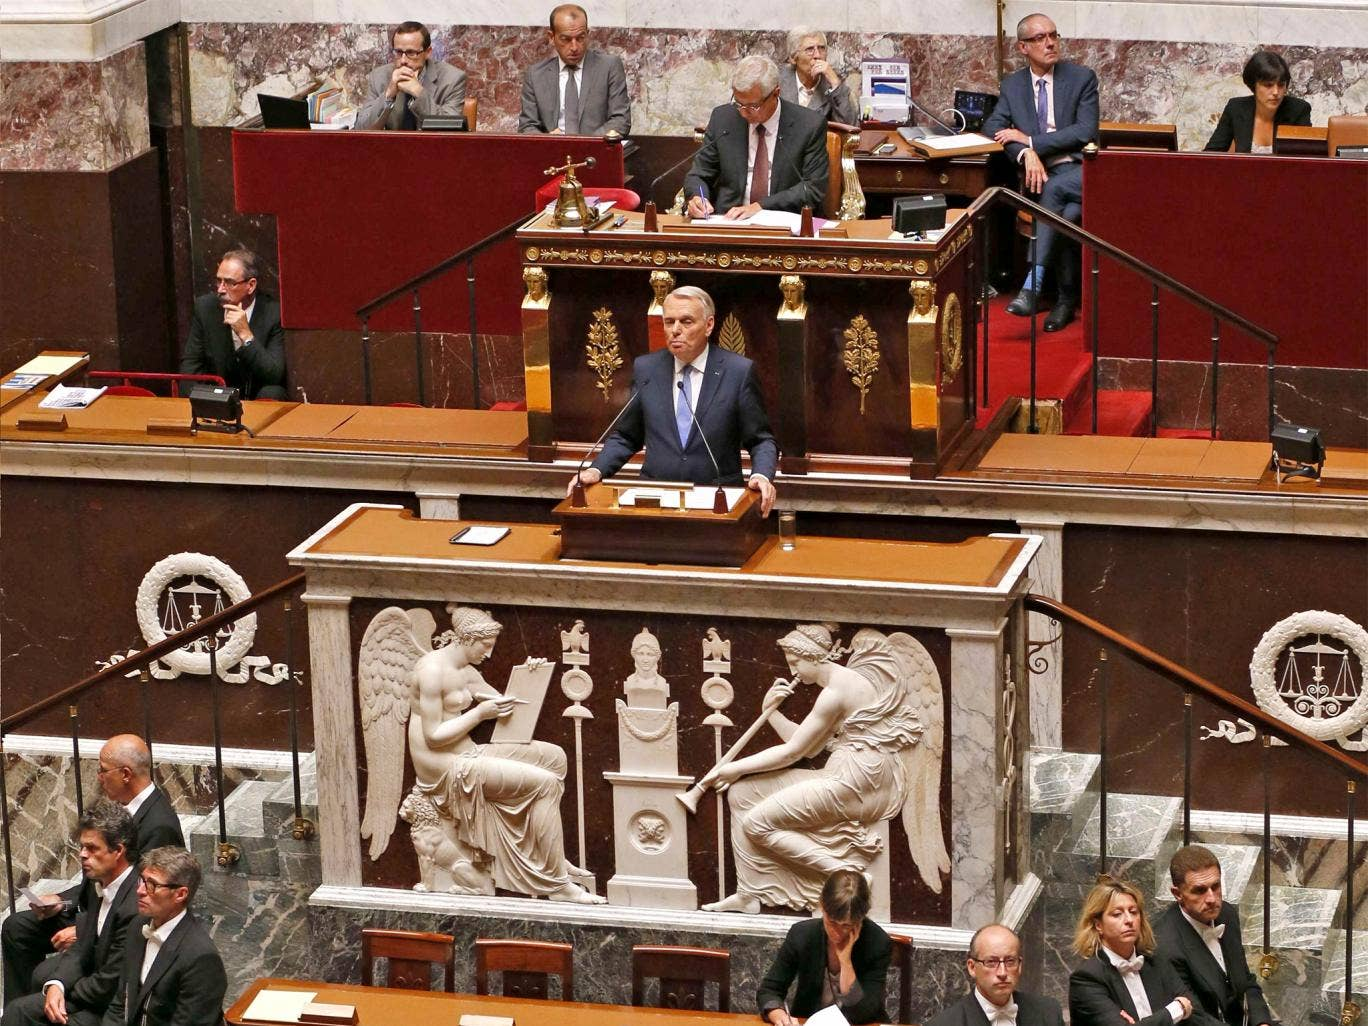 Prime Minister Jean-Marc Ayrault addresses the French National Assembly on Syria